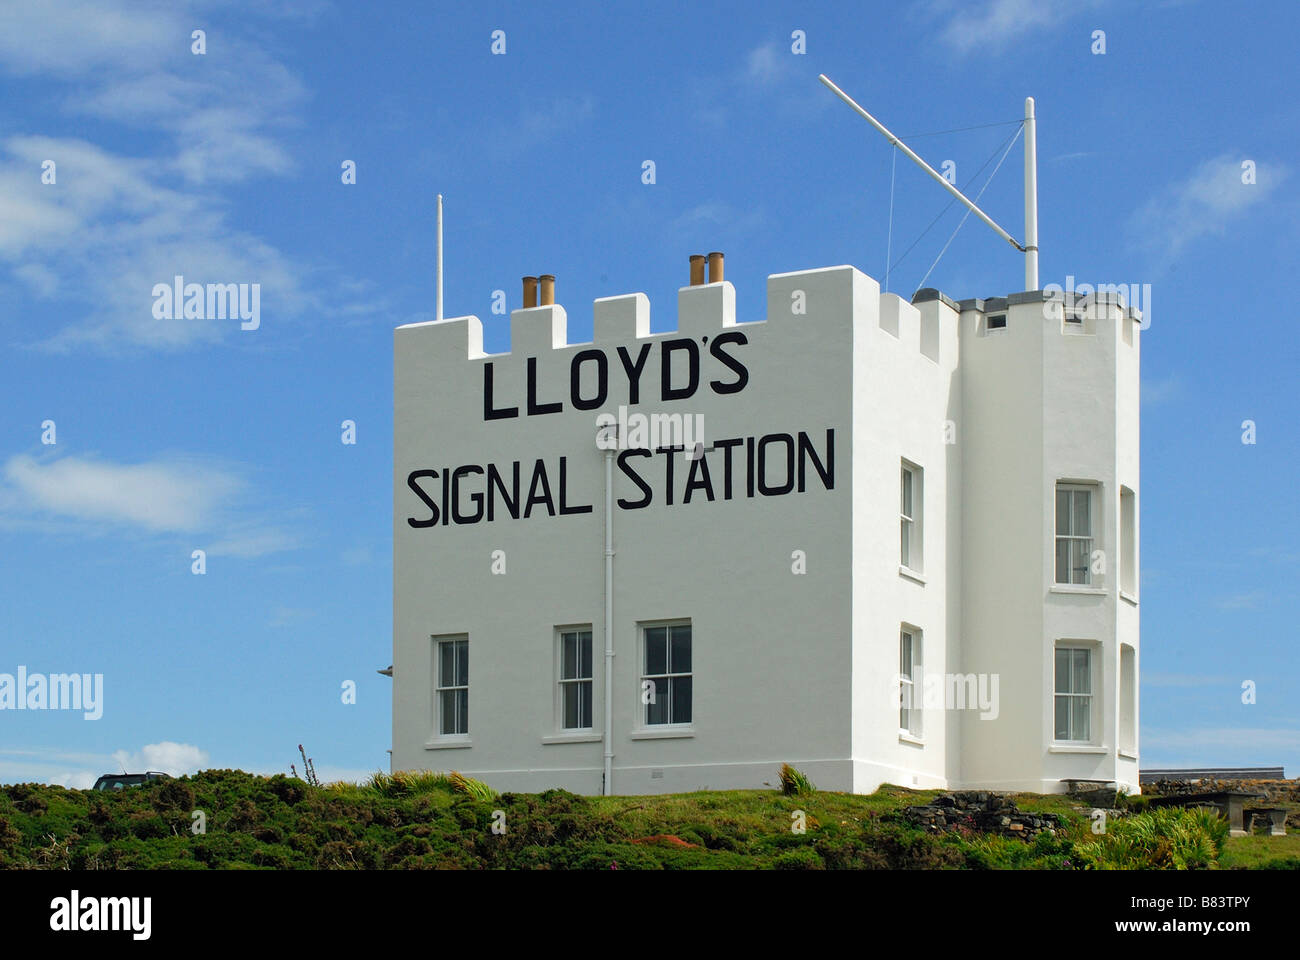 Lloyds signal station Housel Bay Lizard Cornwall UK - Stock Image